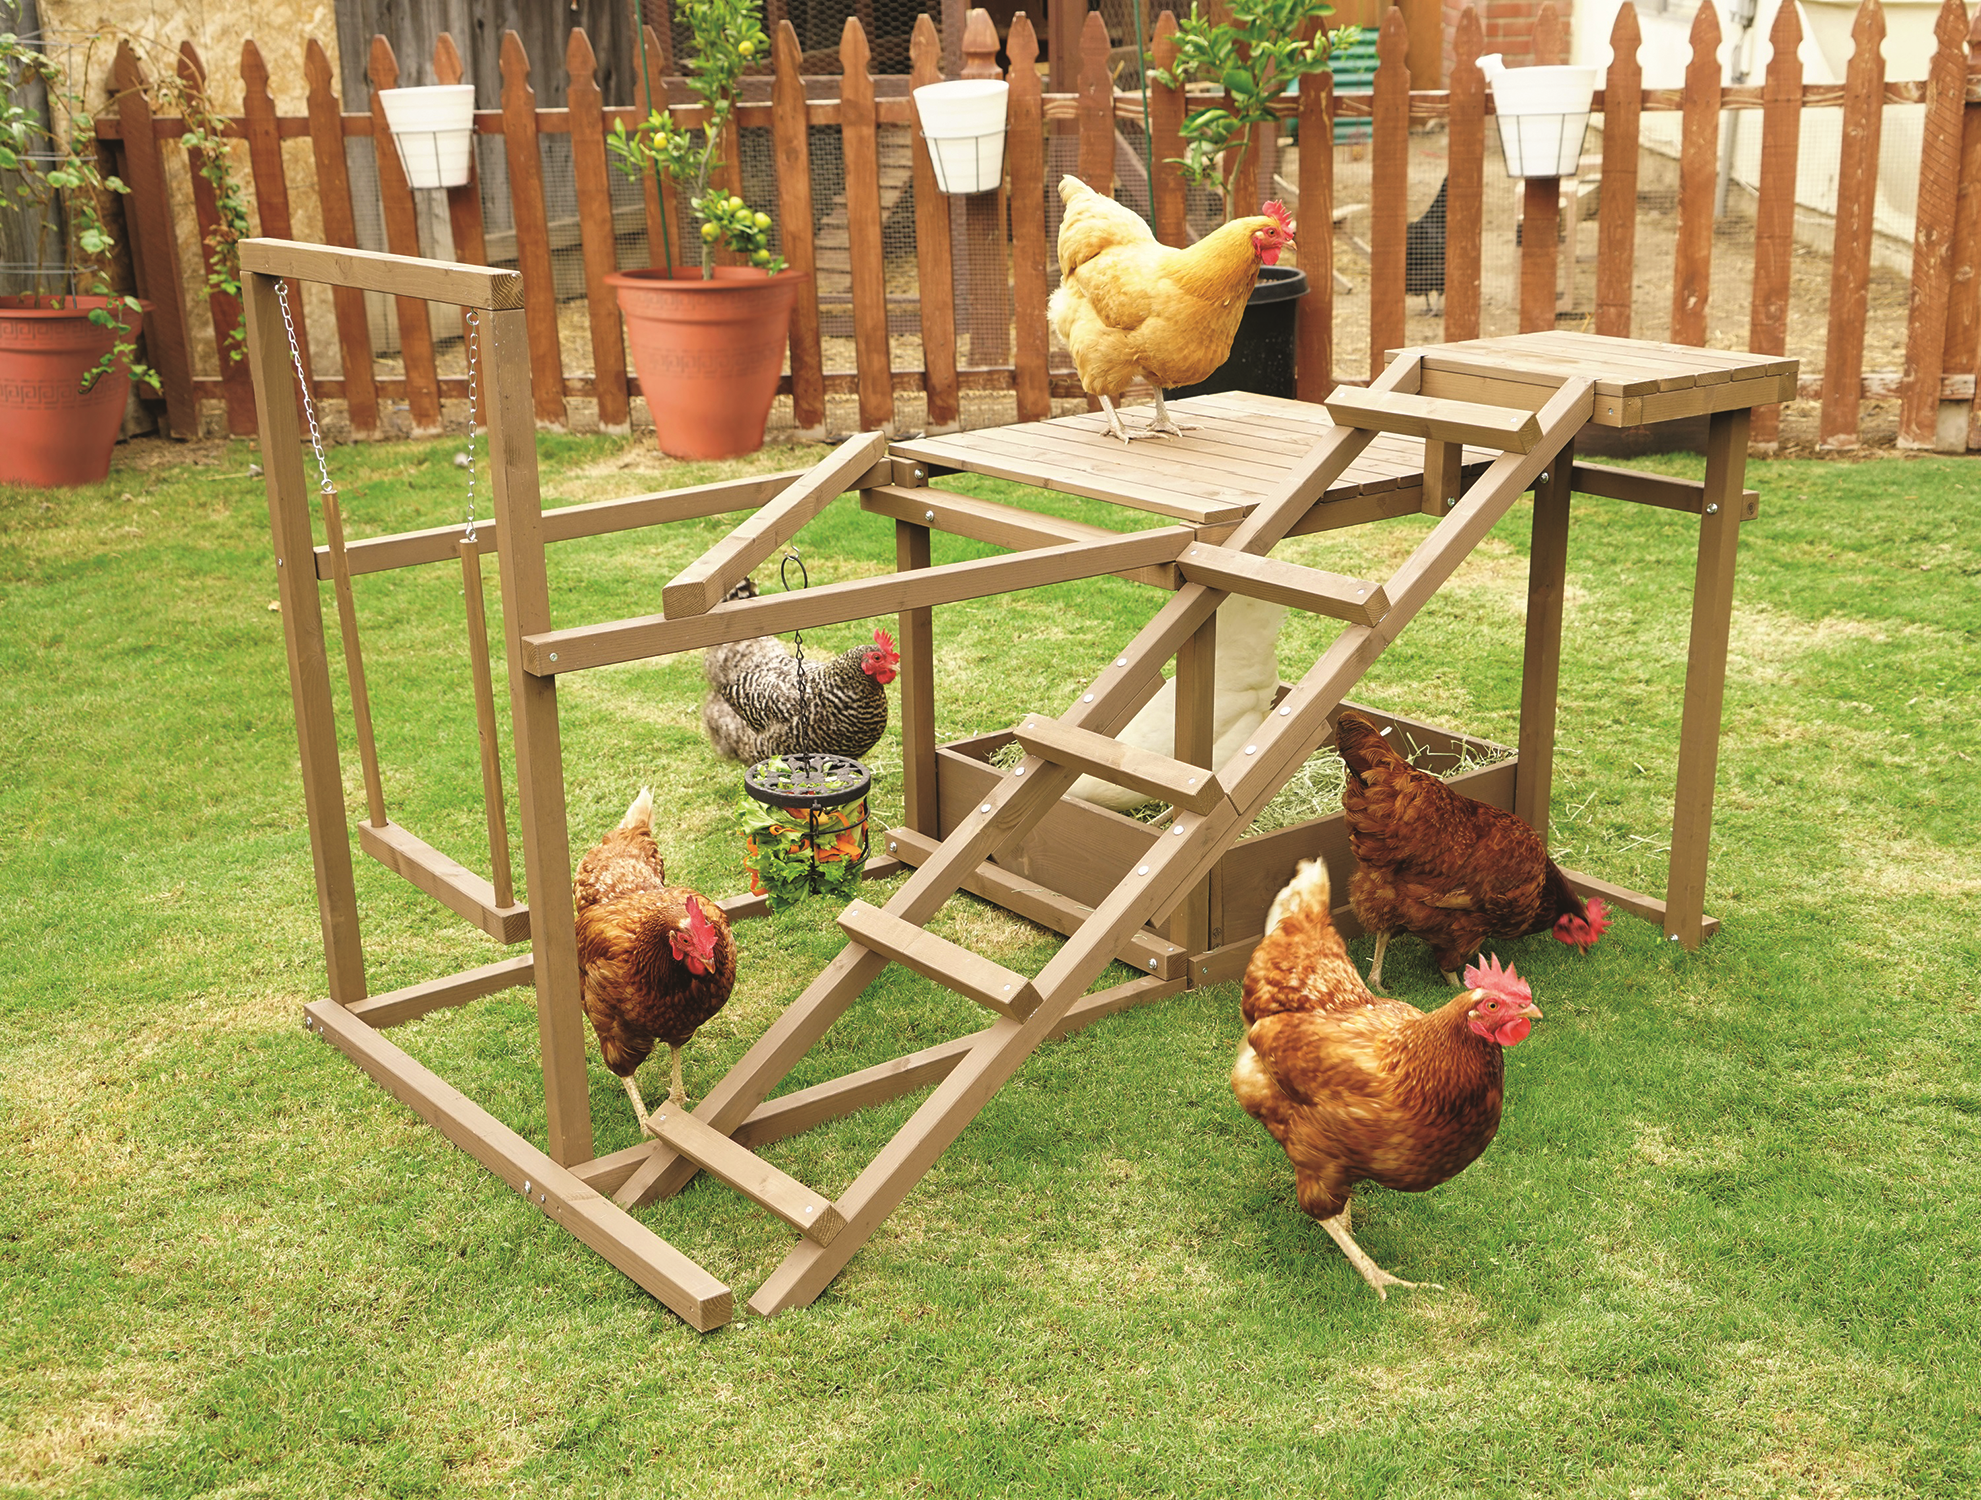 Activity Center For Chickens The Innovation Pet Chicken Activity Center Is A Fun And Unique Activity Center T Pet Chickens Chickens Backyard Diy Chicken Coop